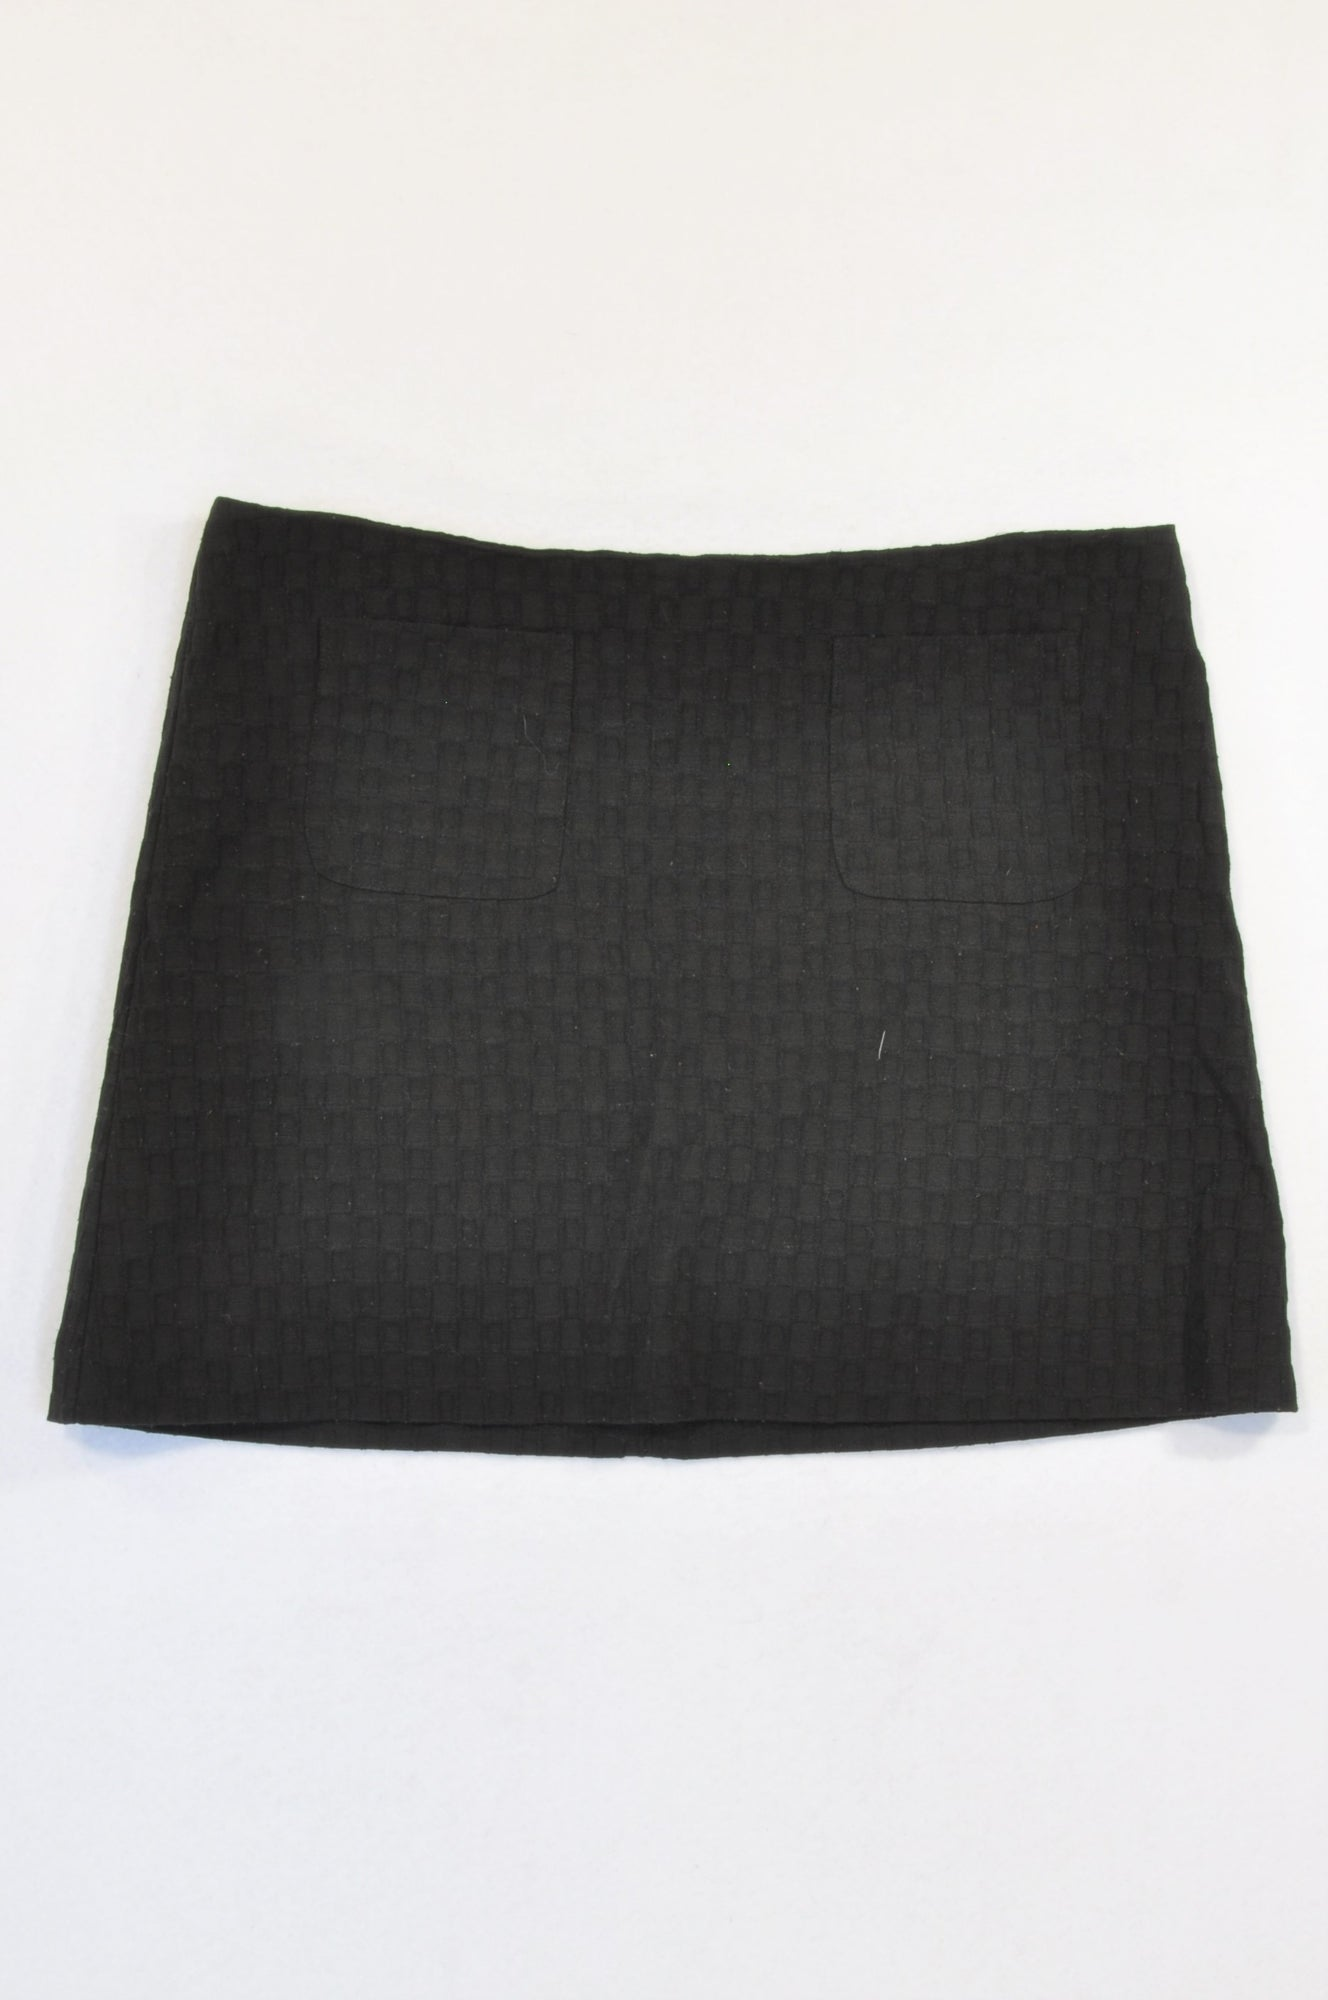 Woolworths Black Textured Skirt Women Size 12